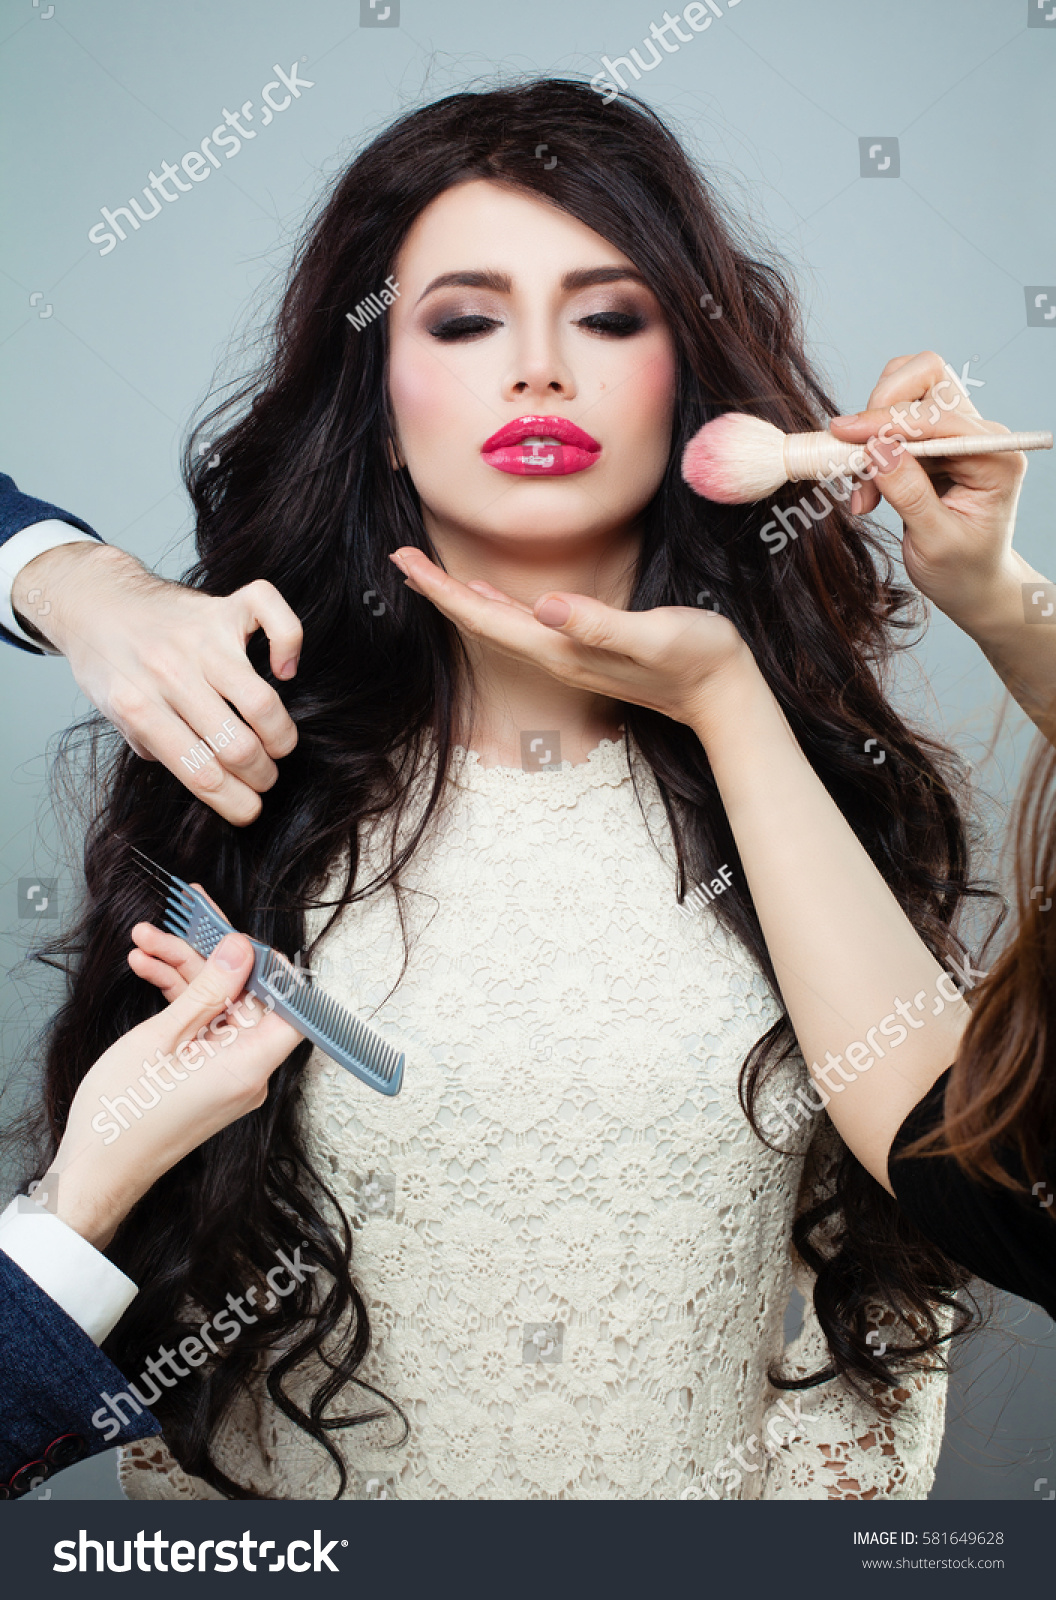 professional hair stylist and makeup artist doing make up and hairstyle with makeup brush and comb - Professional Hair Stylist